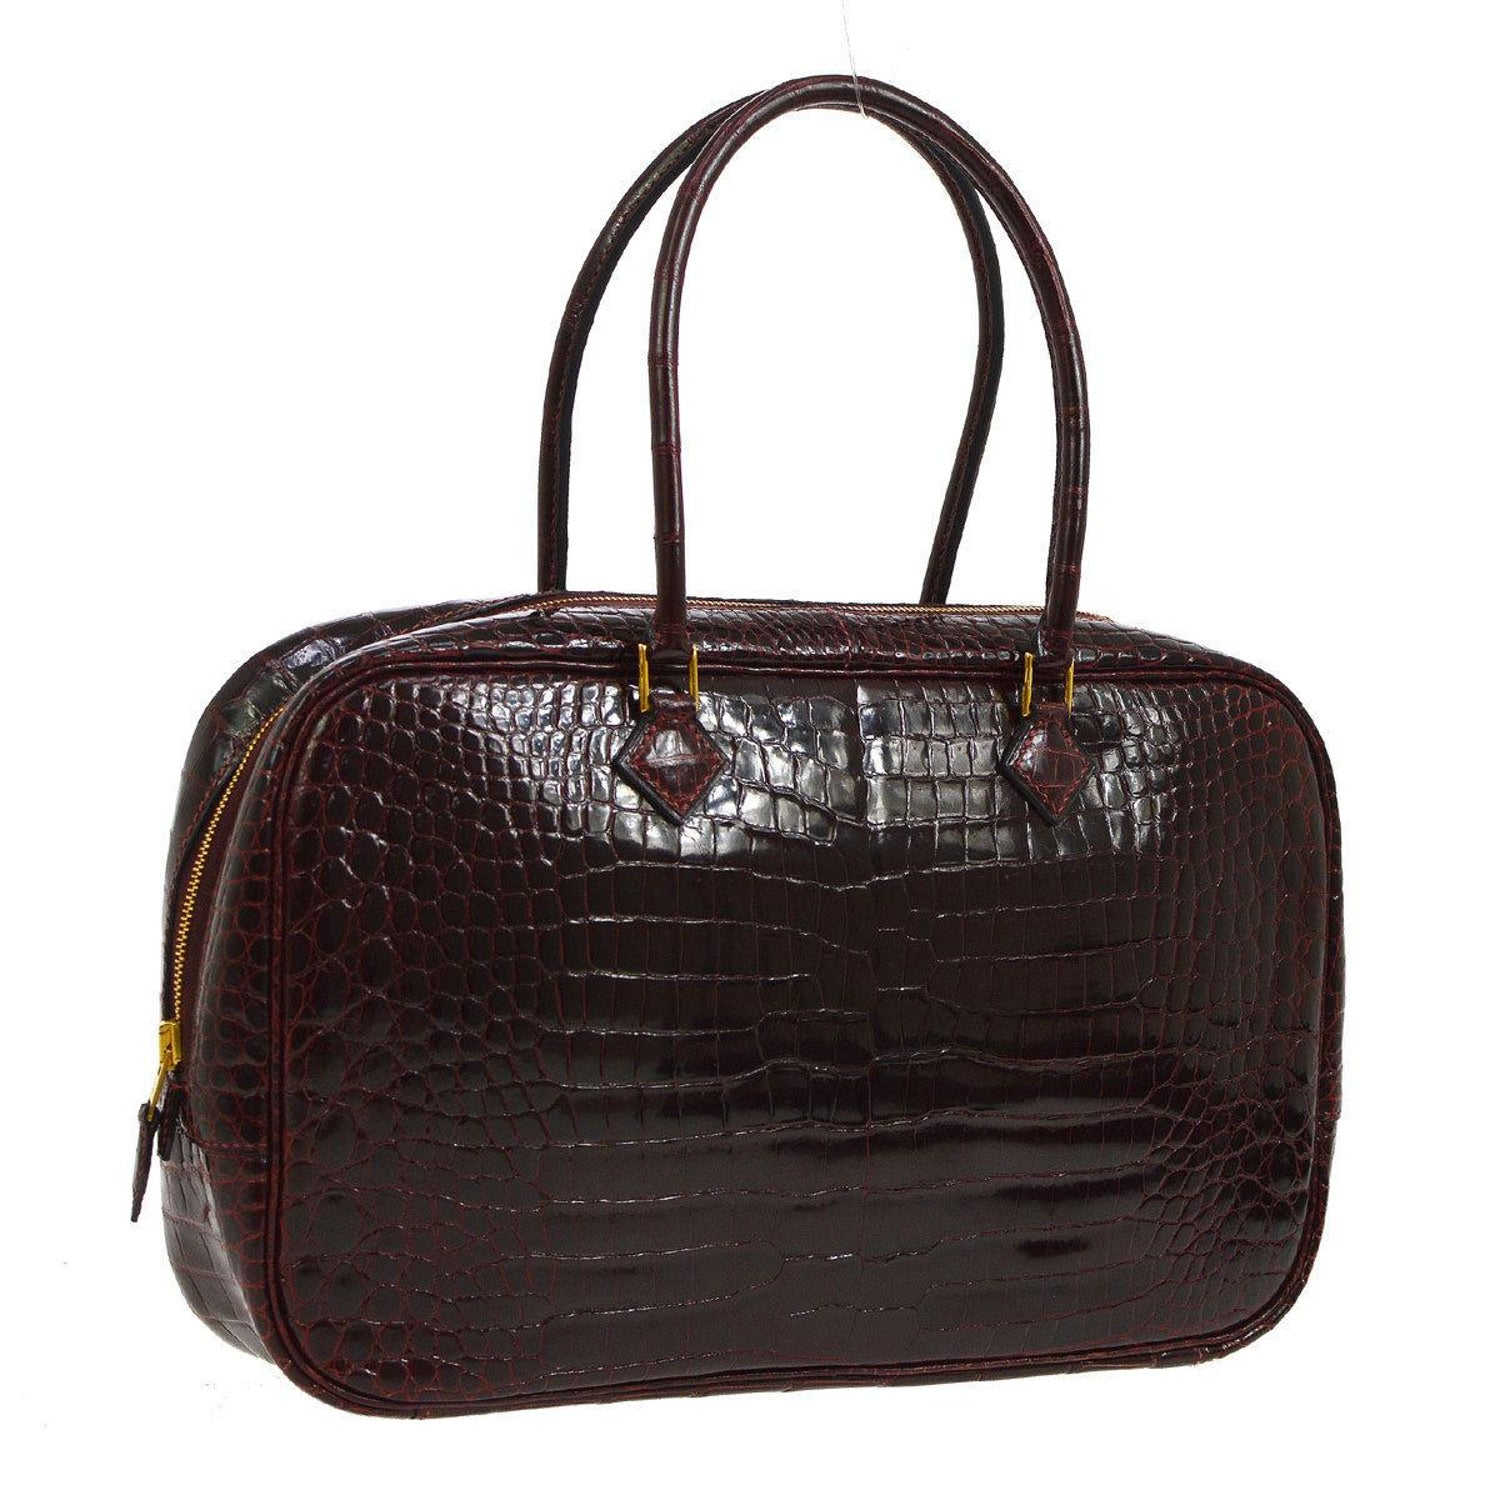 Hermes Rare Crocodile Leather Evening Small Tote Top Handle Satchel Bag For  Sale at 1stdibs 86d3df14582c4